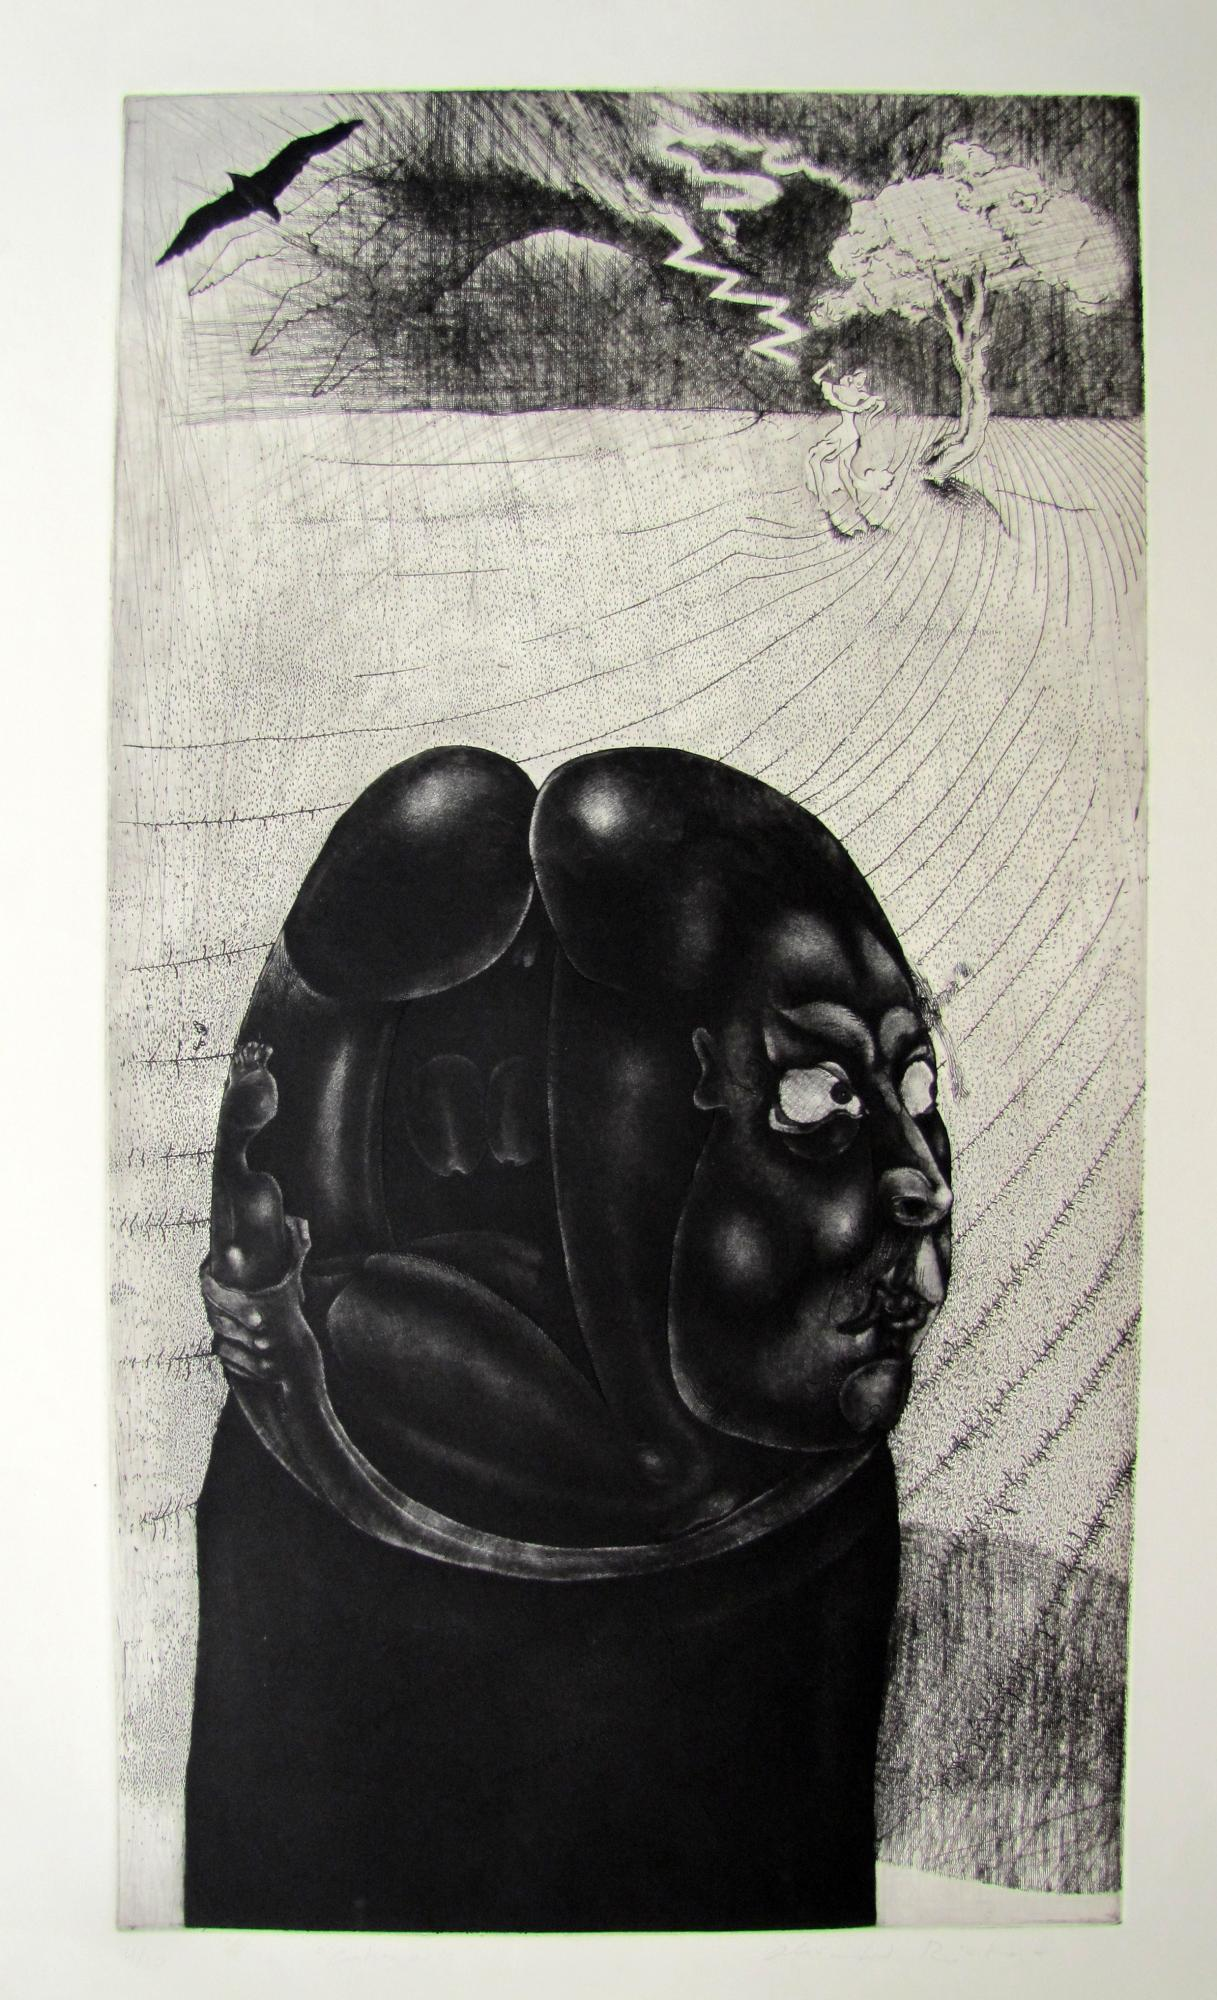 Cabeza.  Etching .1996. 19 x 33 inches